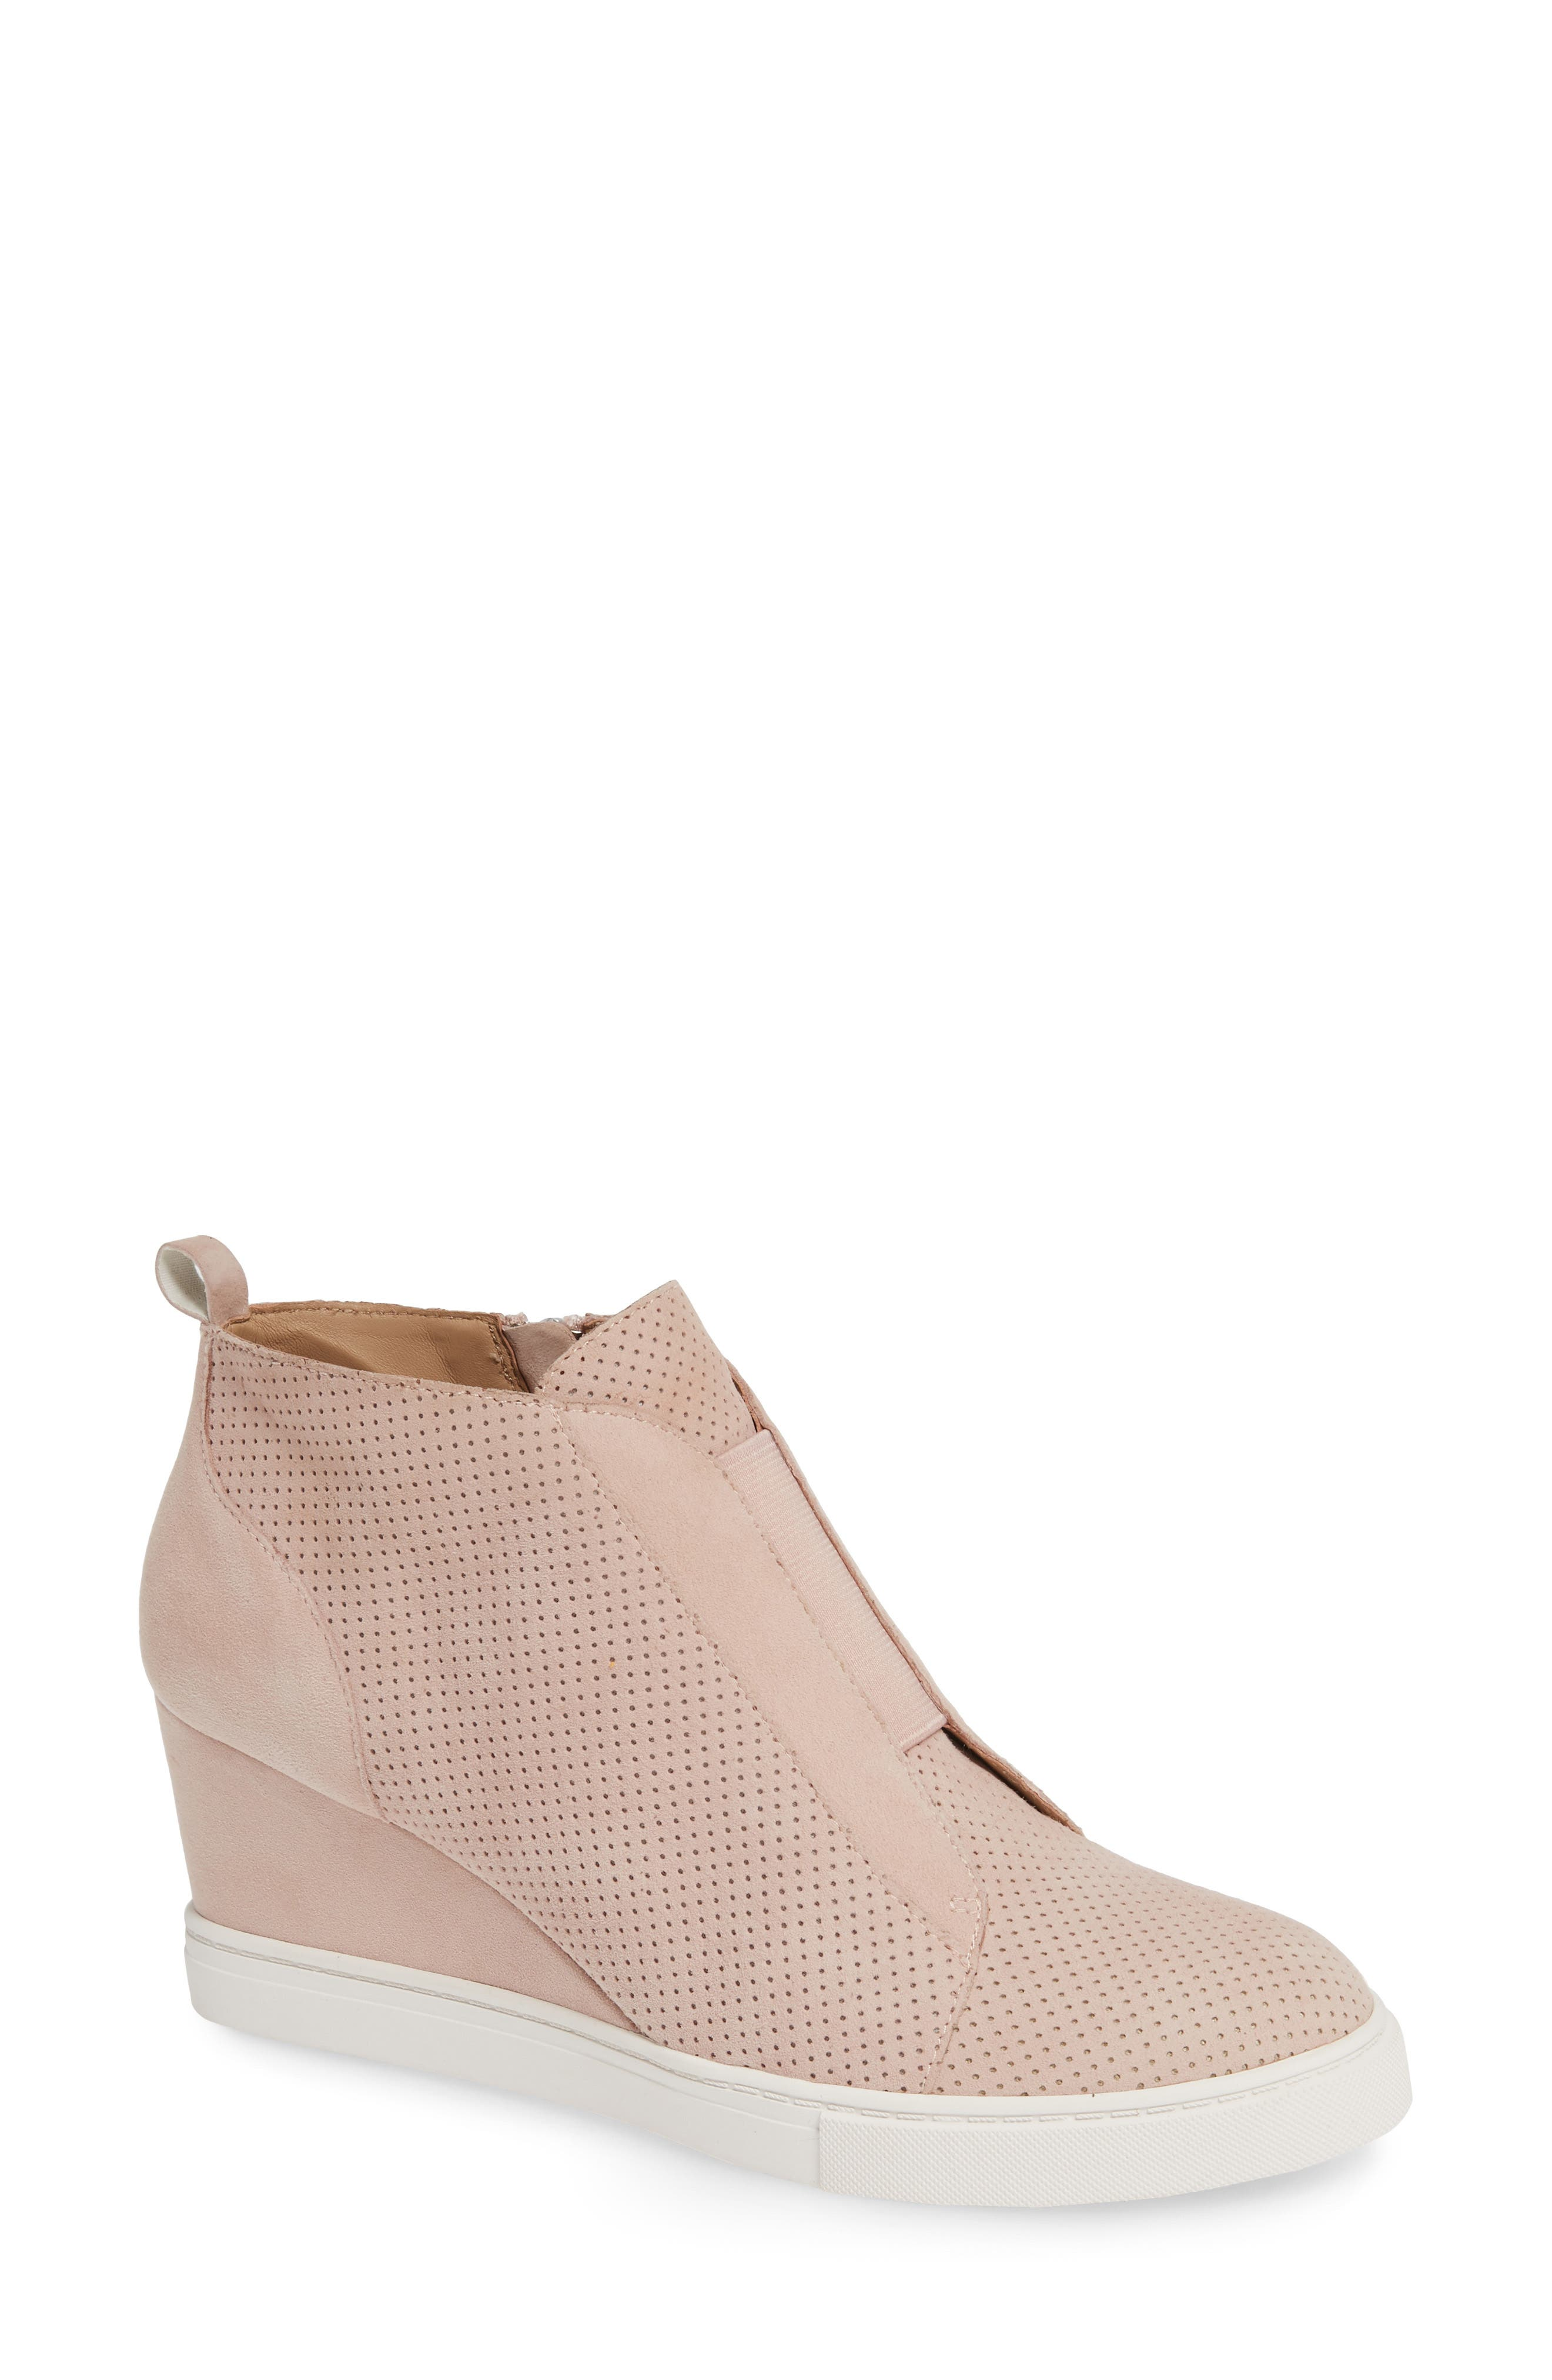 LINEA PAOLO Felicia Wedge Bootie, Main, color, BLUSH PERFORATED SUEDE